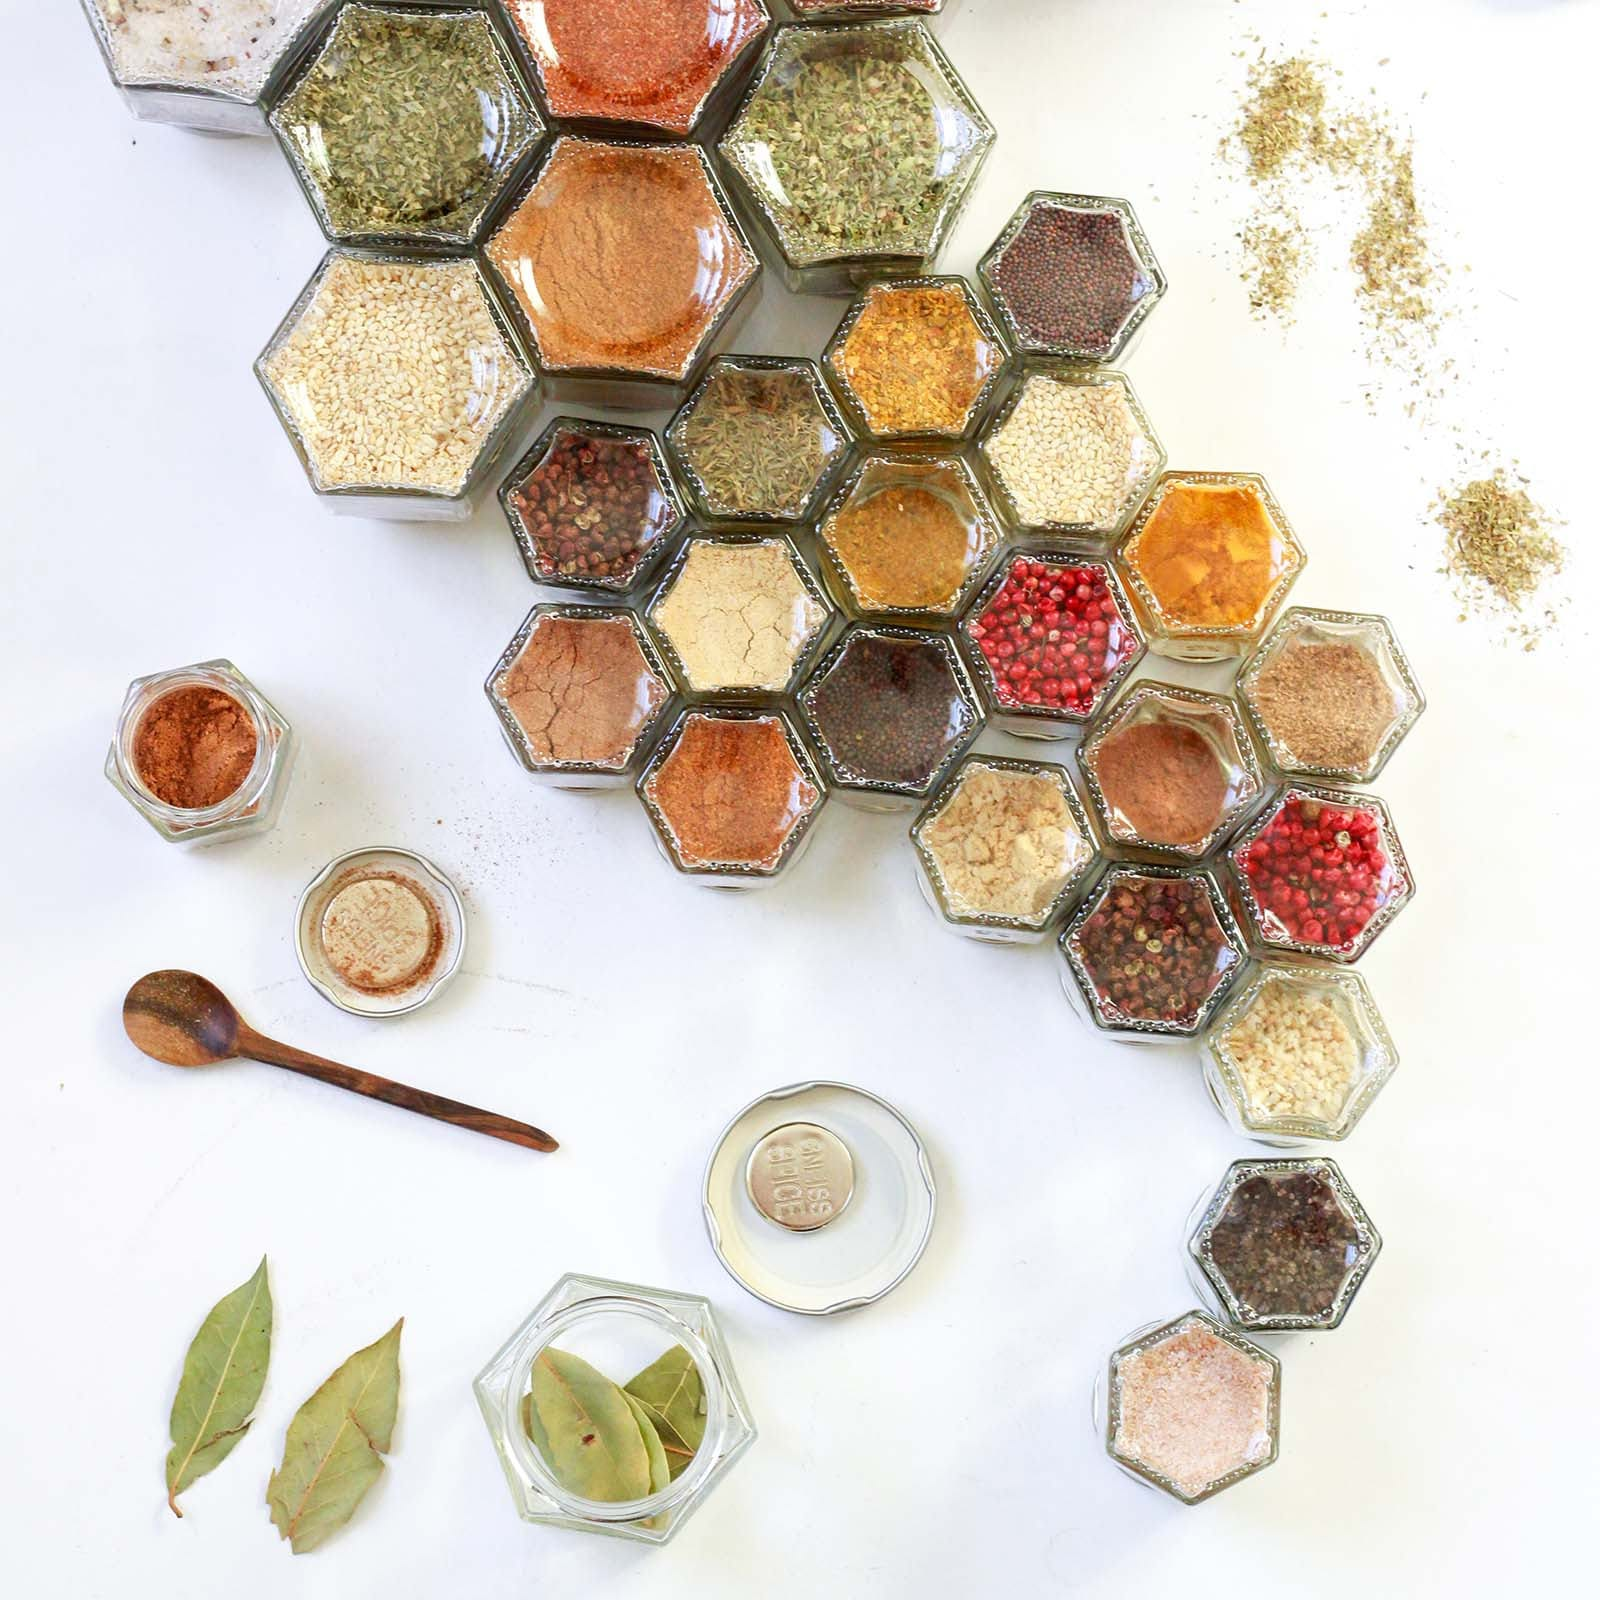 12 DIY Large Empty Magnetic Glass Jars + Spice Labels | Hanging Spice Rack for Your Fridge | Kitchen Storage and Organization | Gneiss Spice